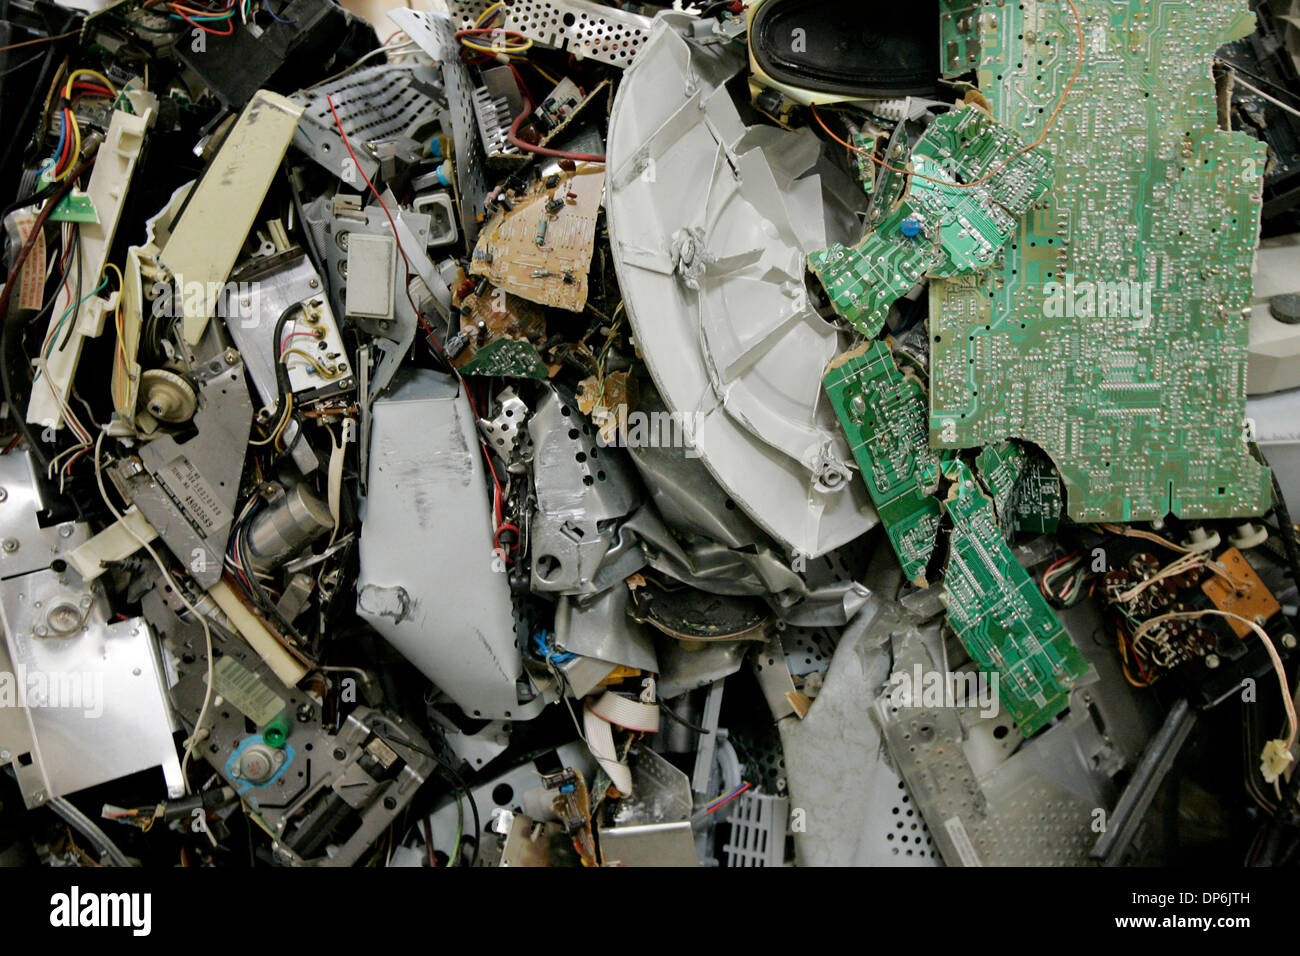 Oct 17, 2006; Rancho Cucamonga, CA, USA; This is a detail picture of bails made from disassembled electronics at Amandi, an e-waste recycling company, on Tuesday in Rancho Cucamonga, California. Electronics are taken apart and sorted and crushed into bails where they will be taken to other company's for further recycling. Mandatory Credit: Photo by Eduardo Contreras/SDU-T/ZUMA Pres - Stock Image